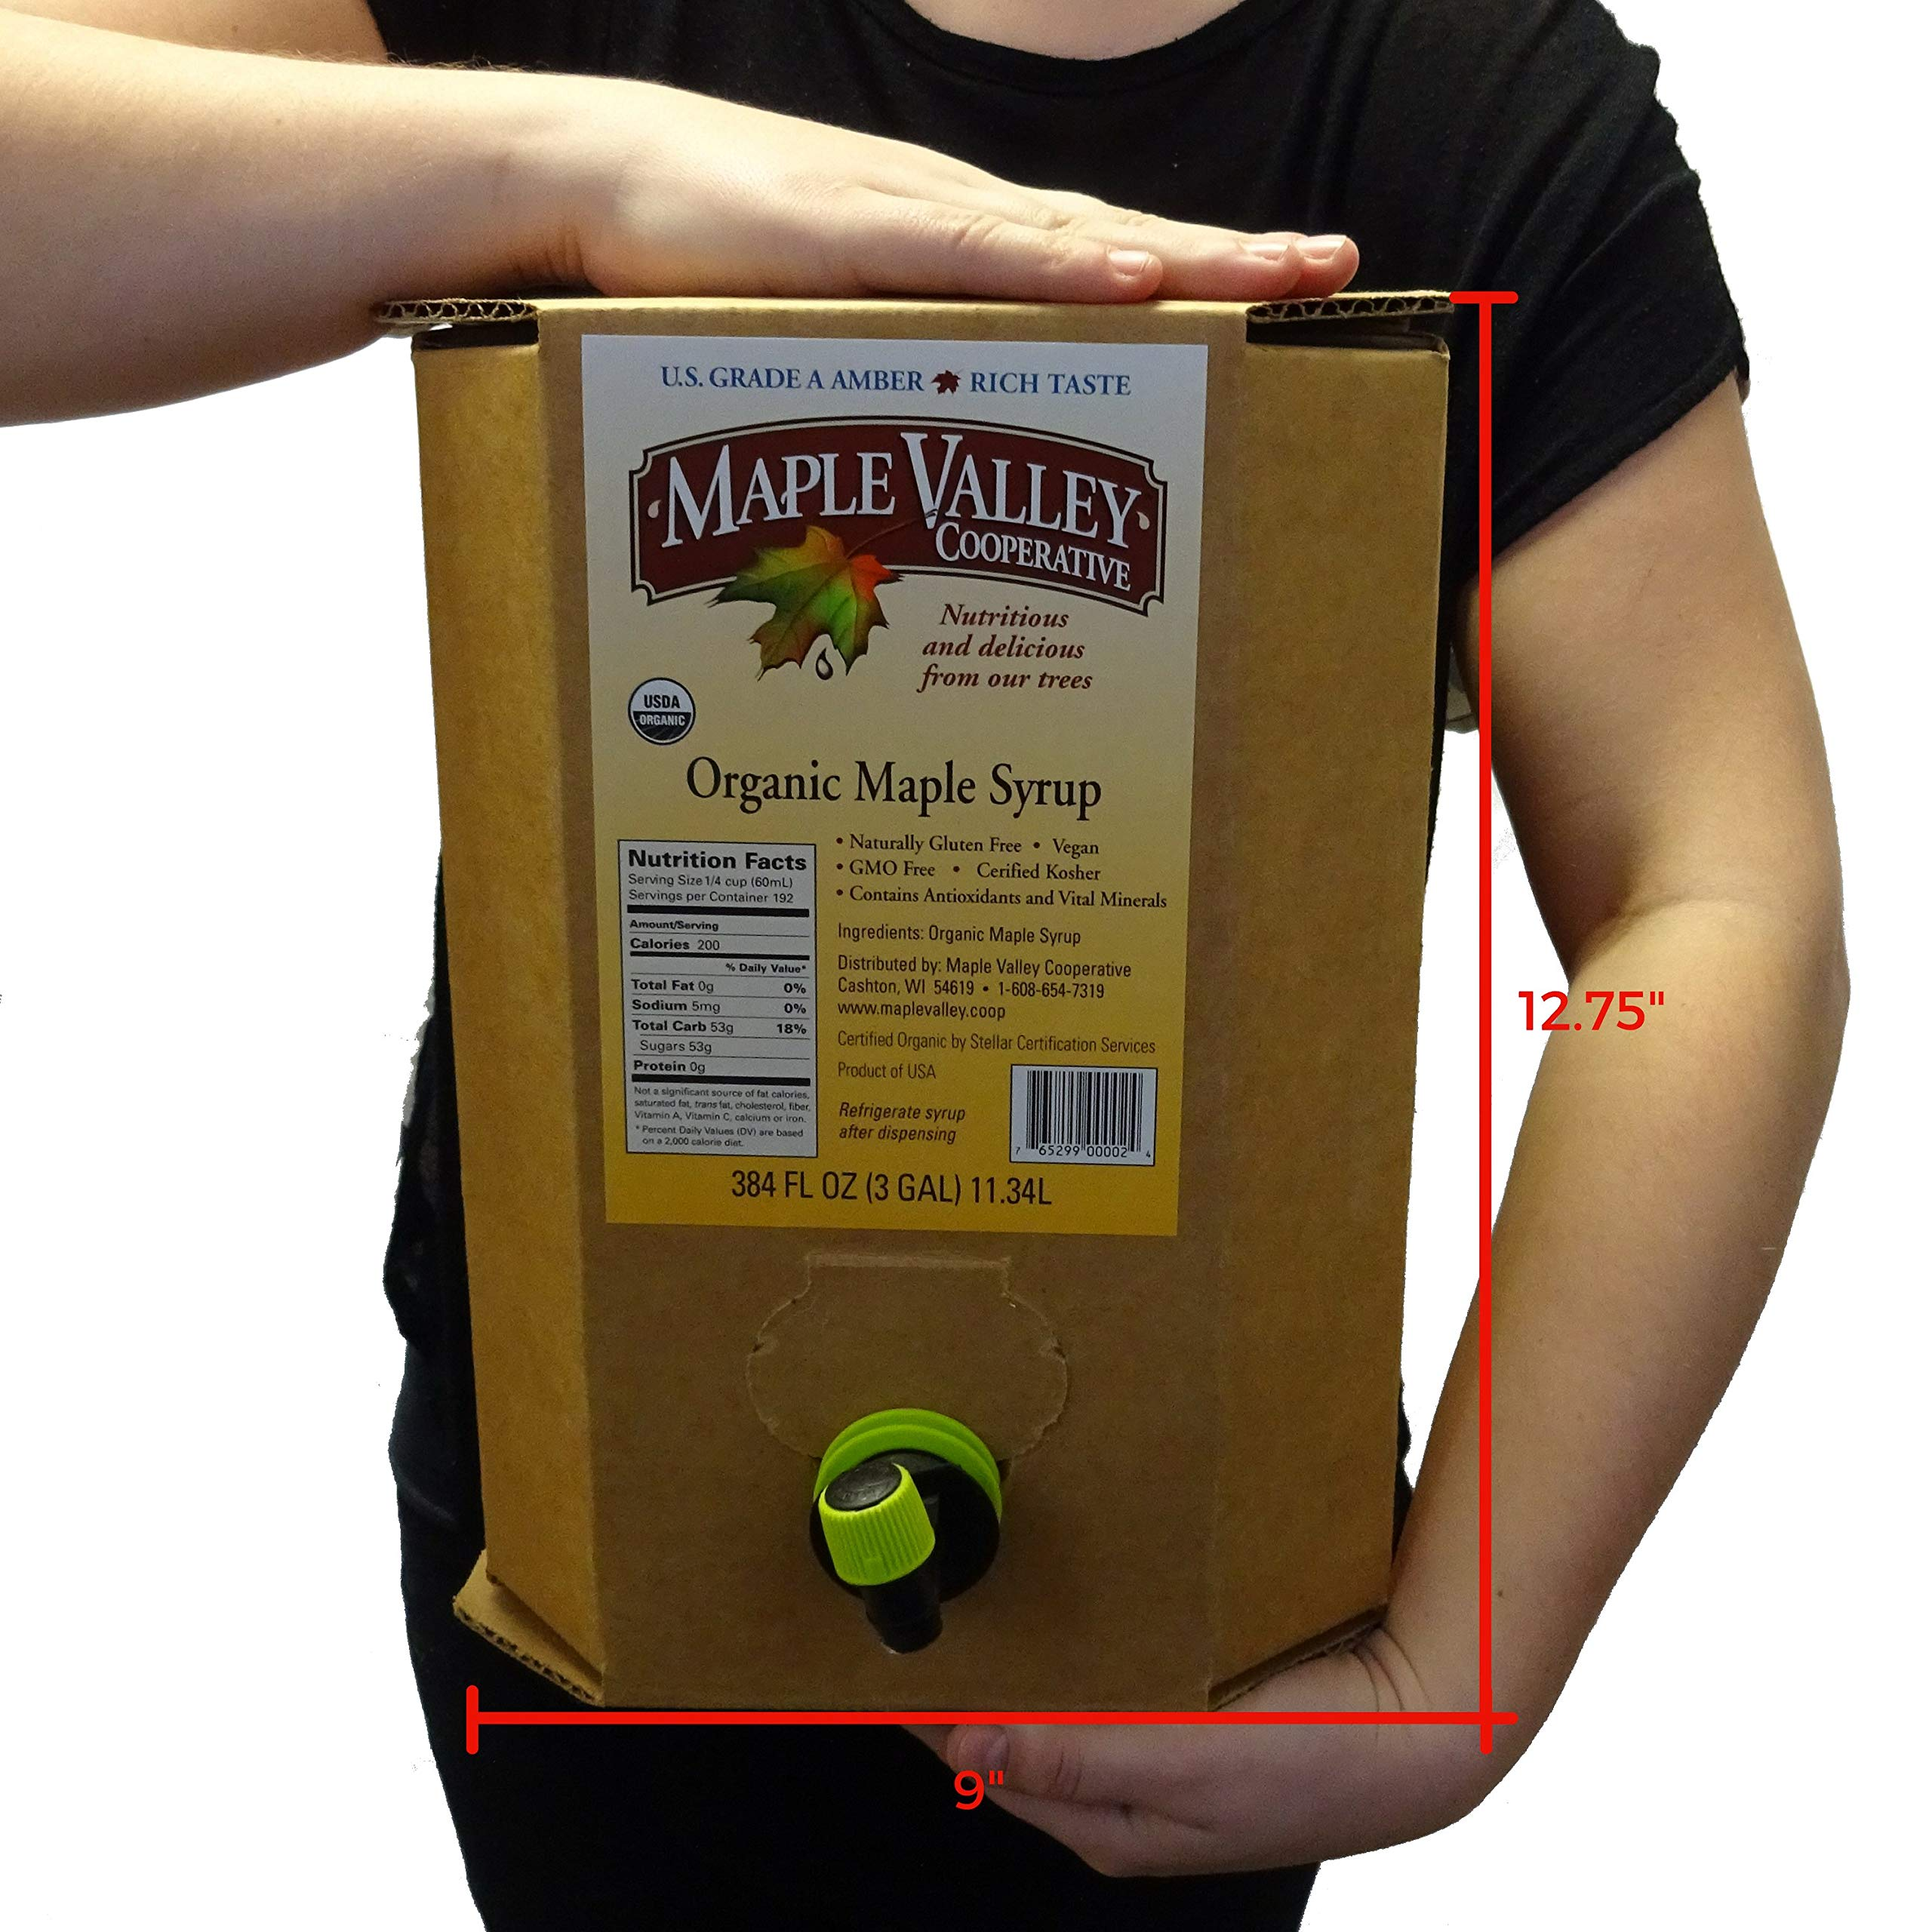 Maple Valley Organic Maple Syrup, 3-Gallon Bag-In-Box, Grade A (Amber Color, Rich Taste)